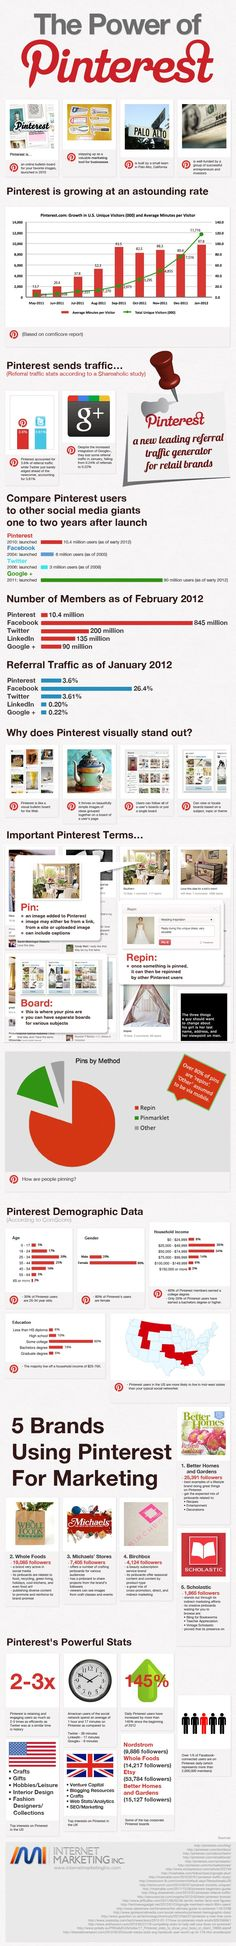 Pinterest Data You Can't Ignore: The Ultimate Guide to Pinterest